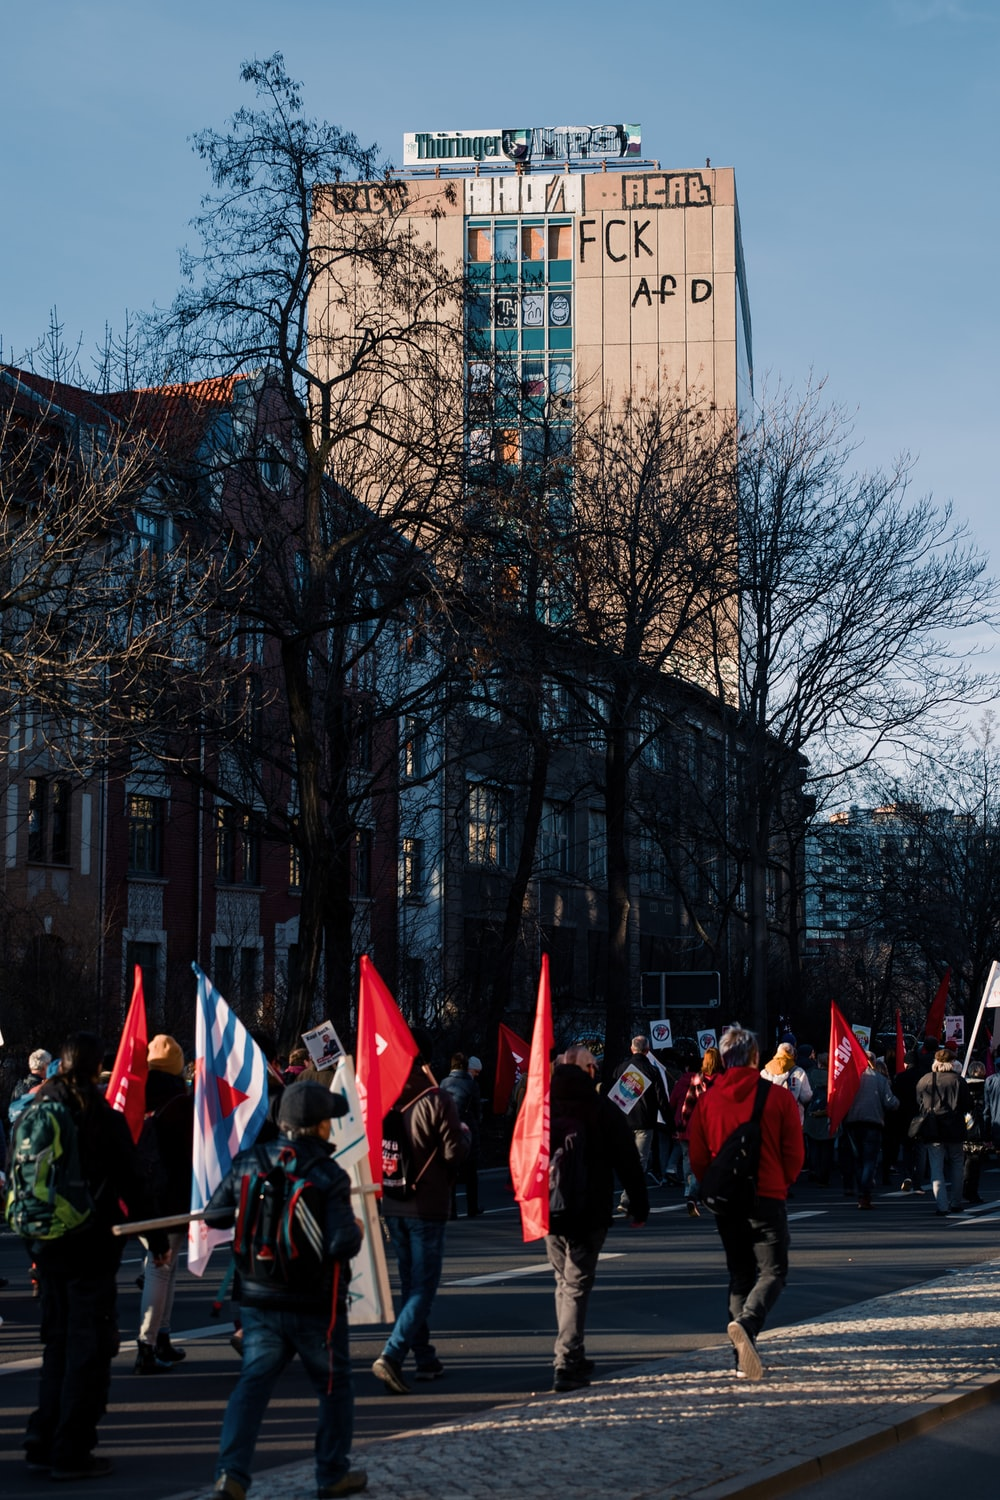 people in red and black suits standing near building during daytime